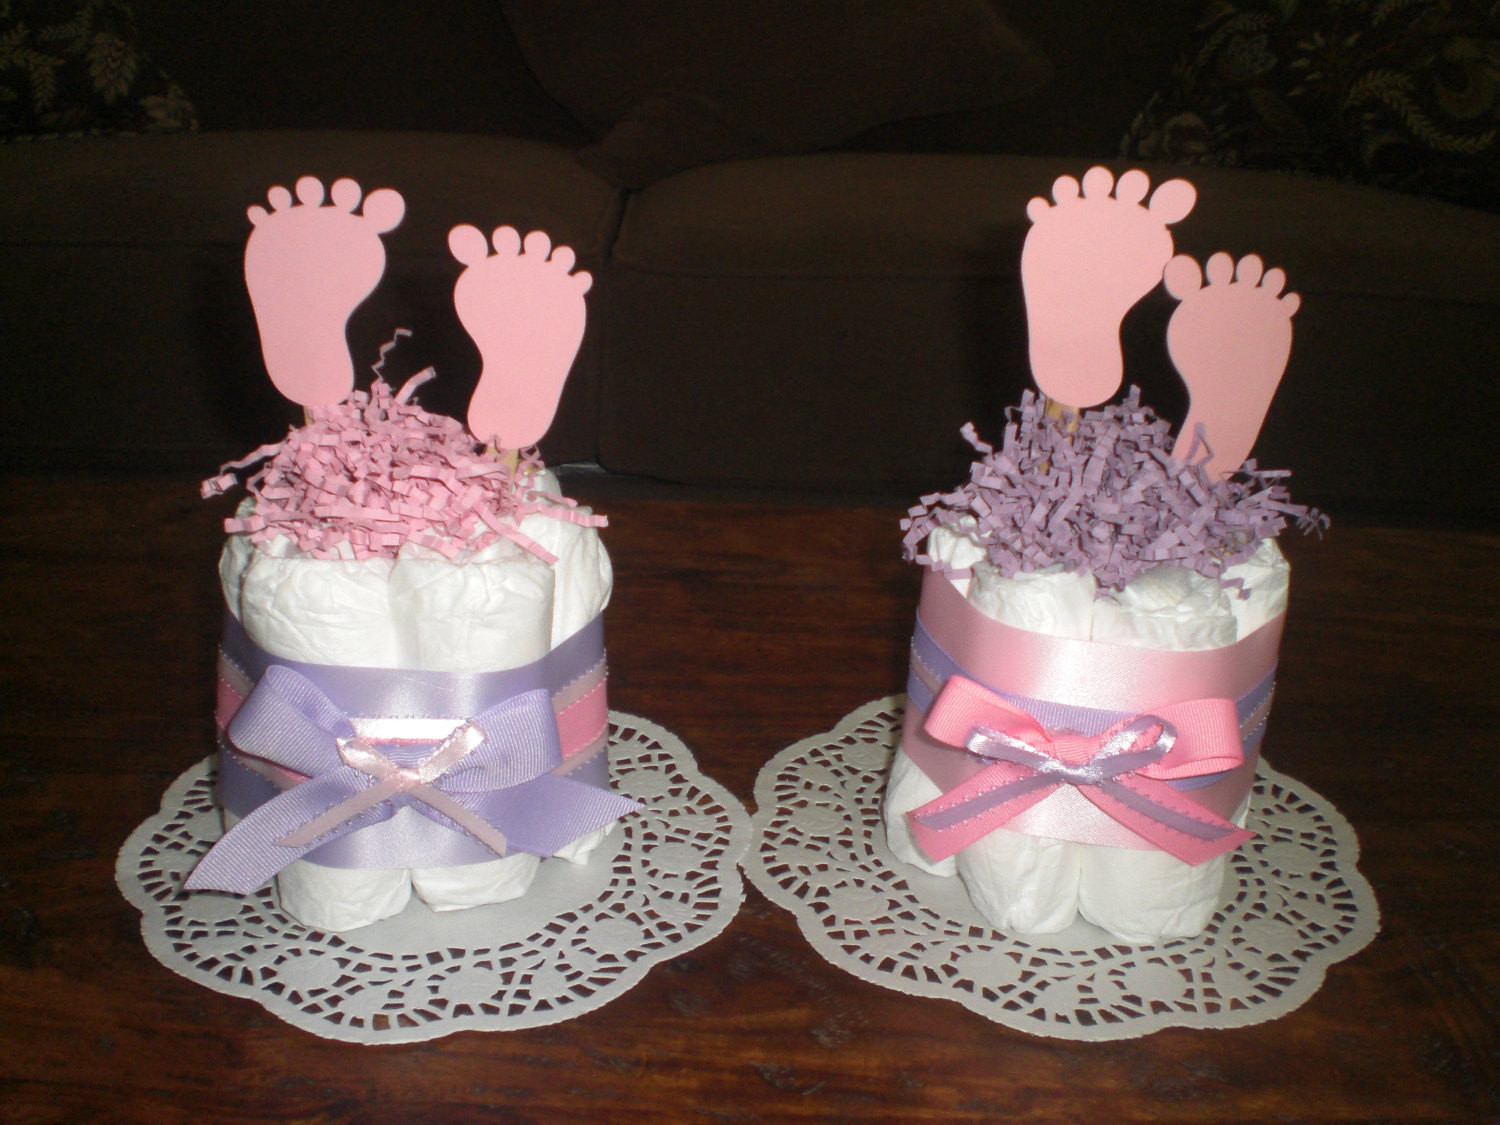 Baby Shower Diaper Cakes Lovely Baby Feet Diaper Cake Baby Shower Centerpieces Other Sizes and Of Gorgeous 41 Ideas Baby Shower Diaper Cakes